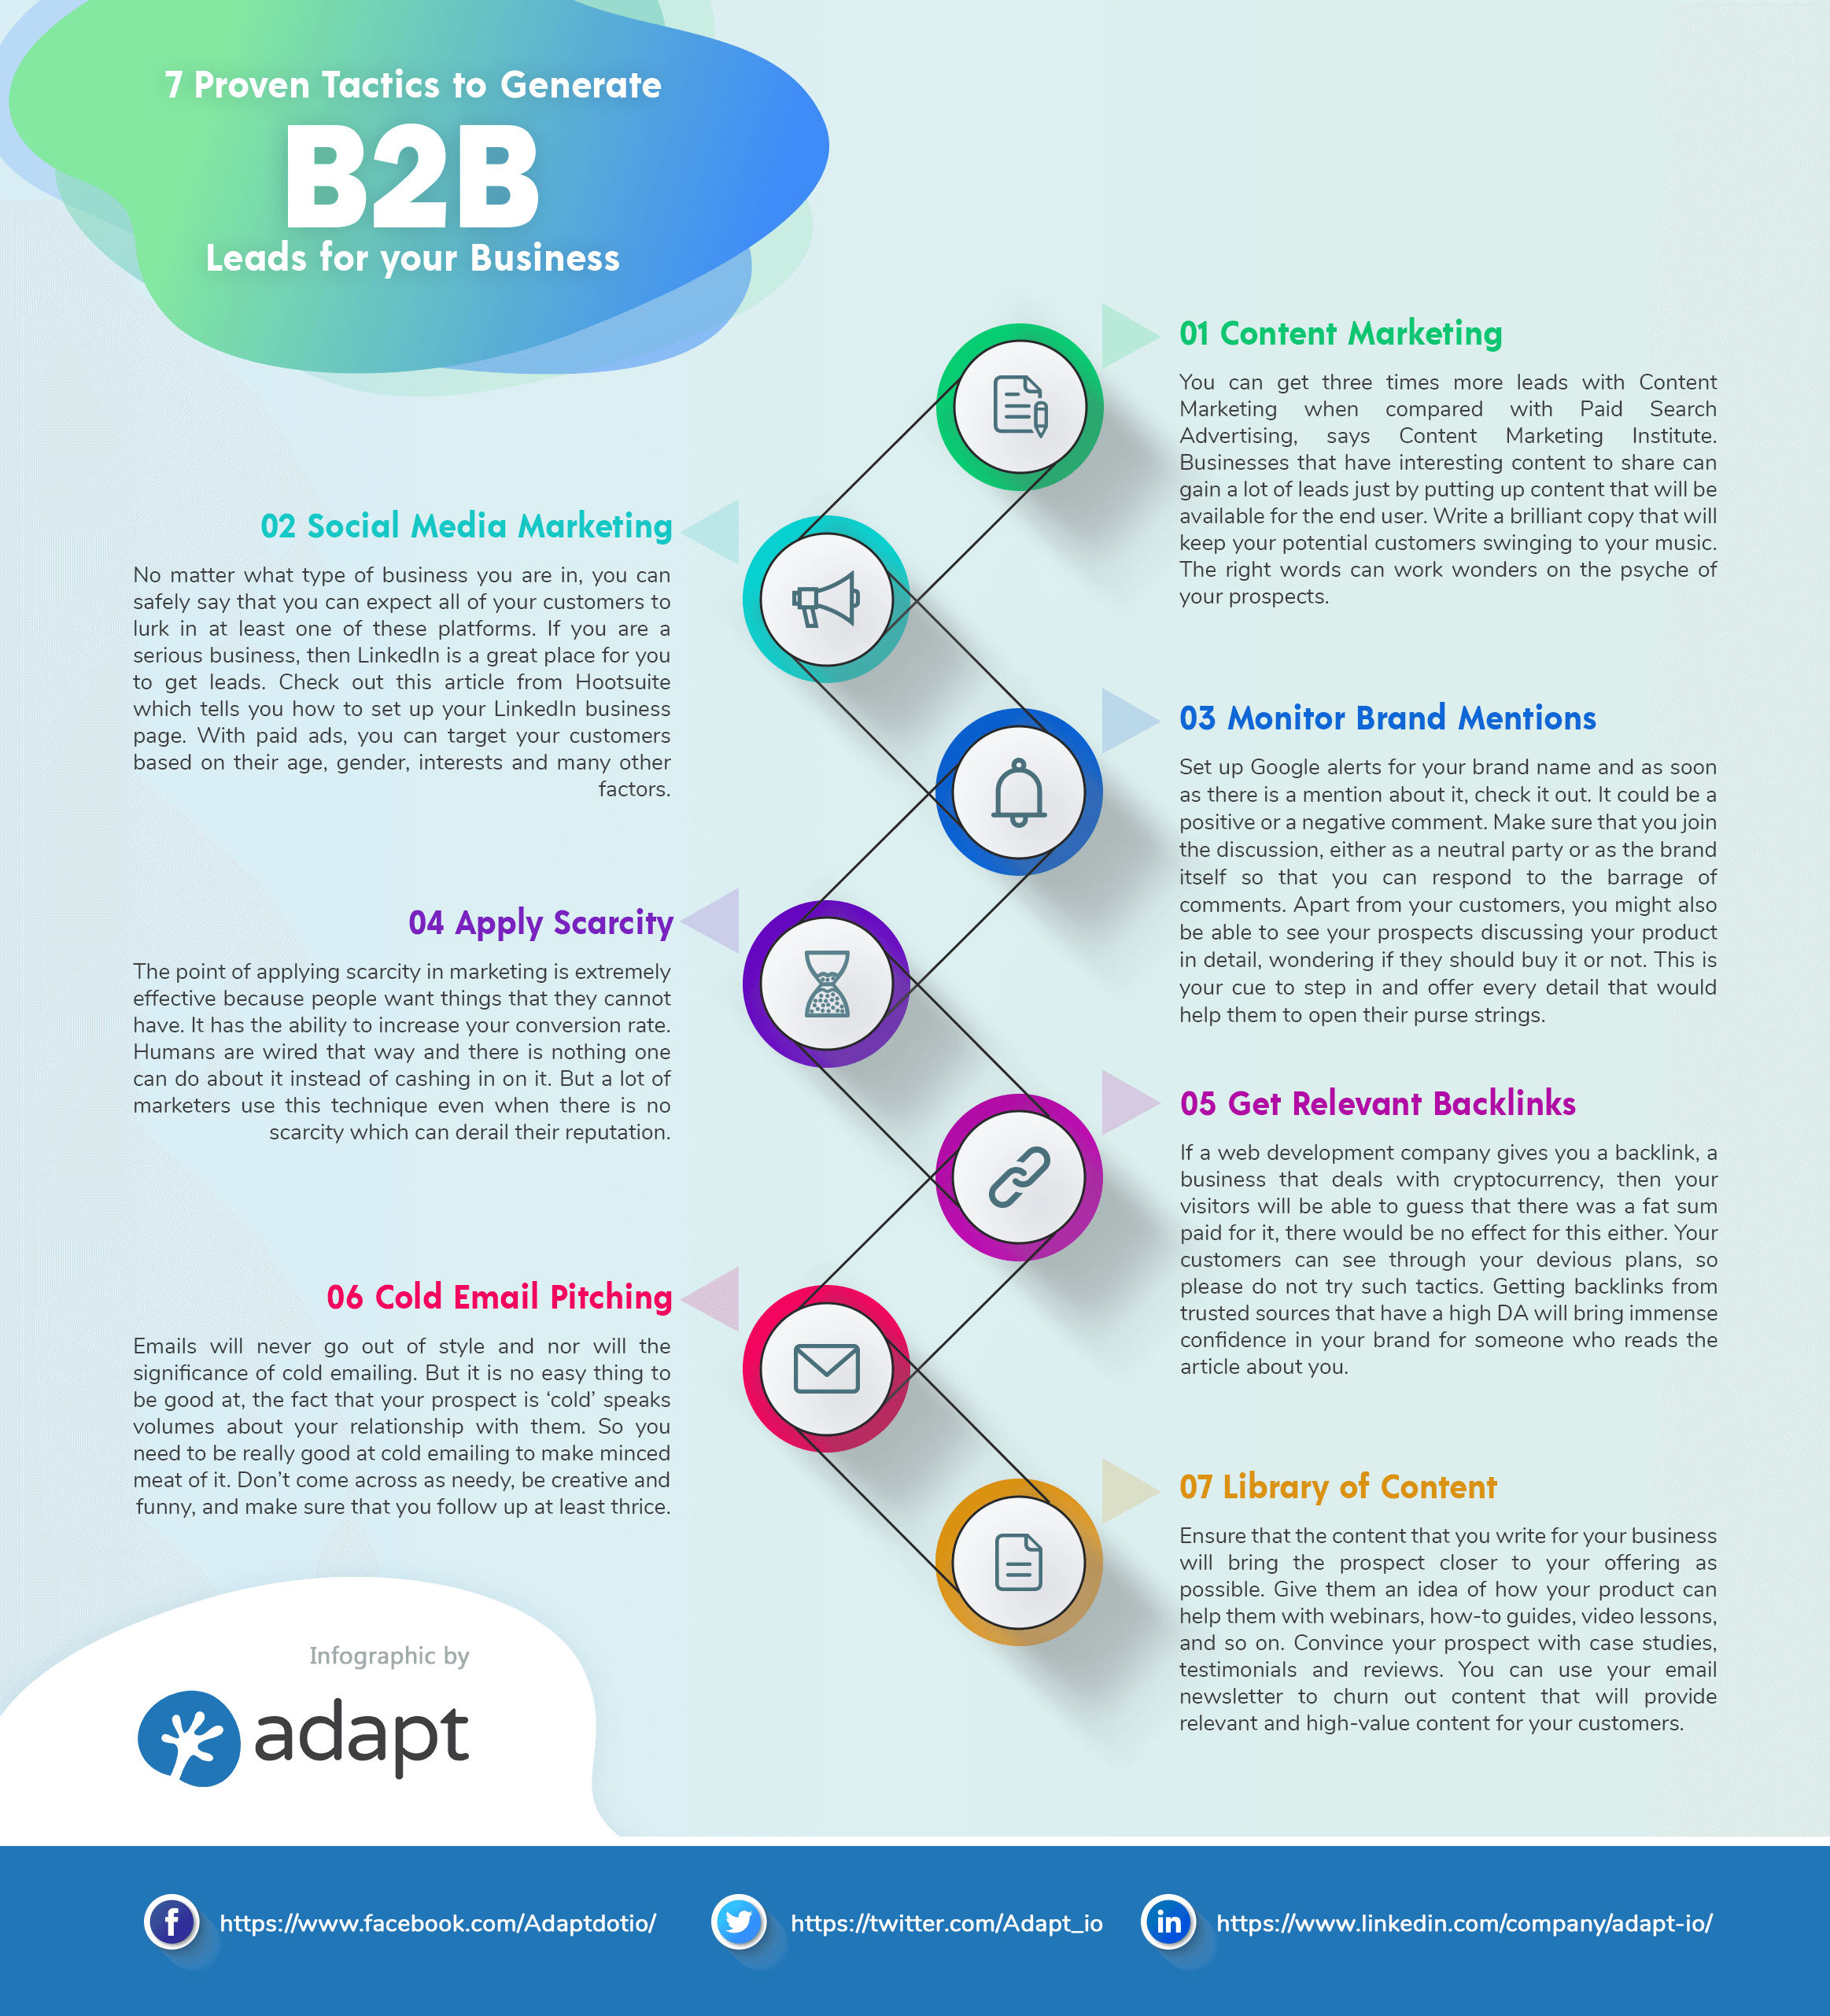 7 Proven Tactics to Generate B2B Leads for your Business-infographic-plaza